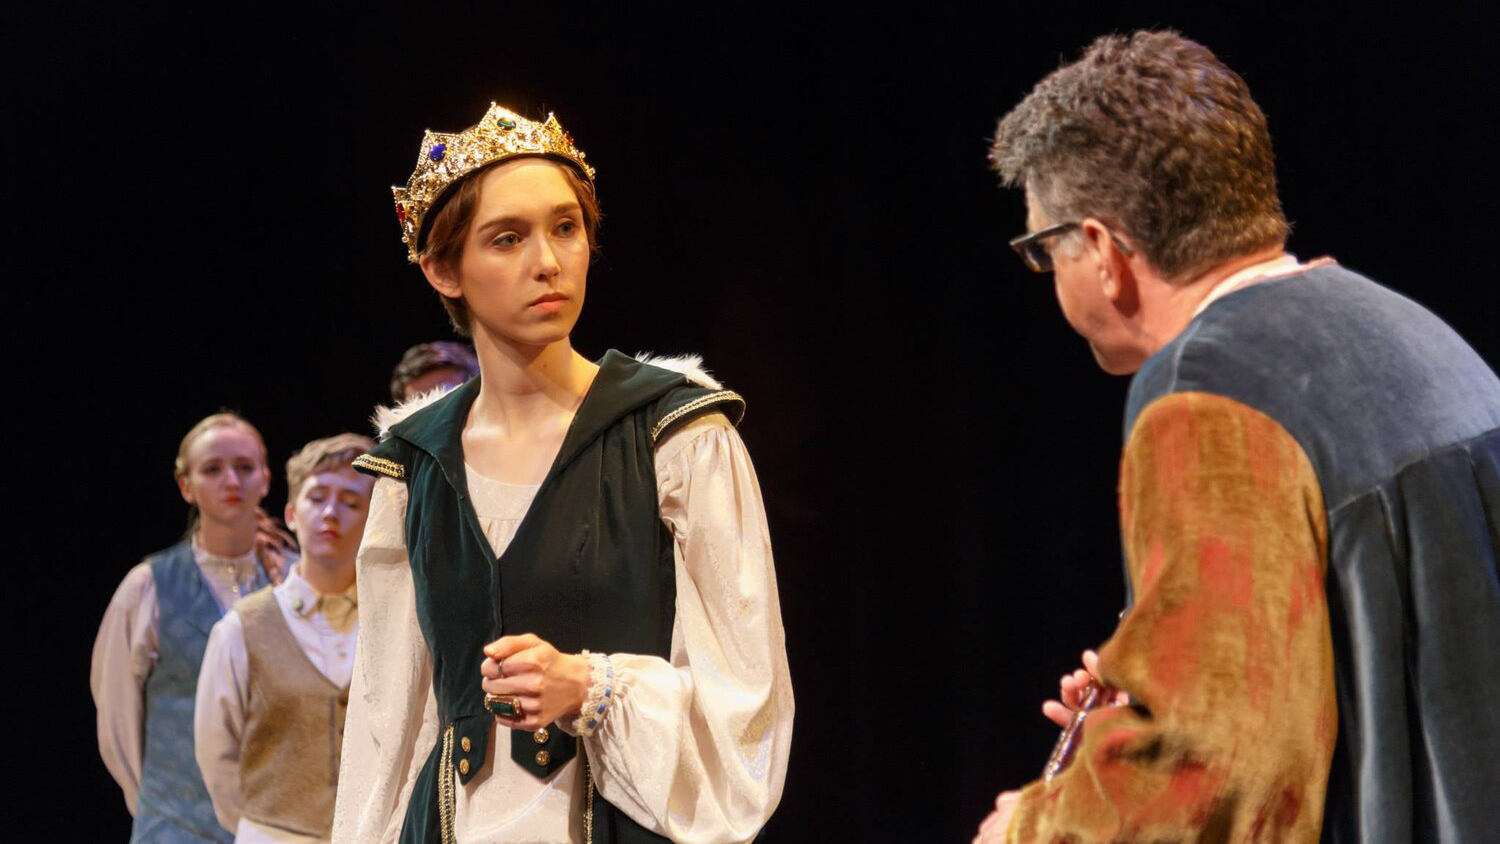 Actors perform in Richard II. One faces the camera wearing a crown.